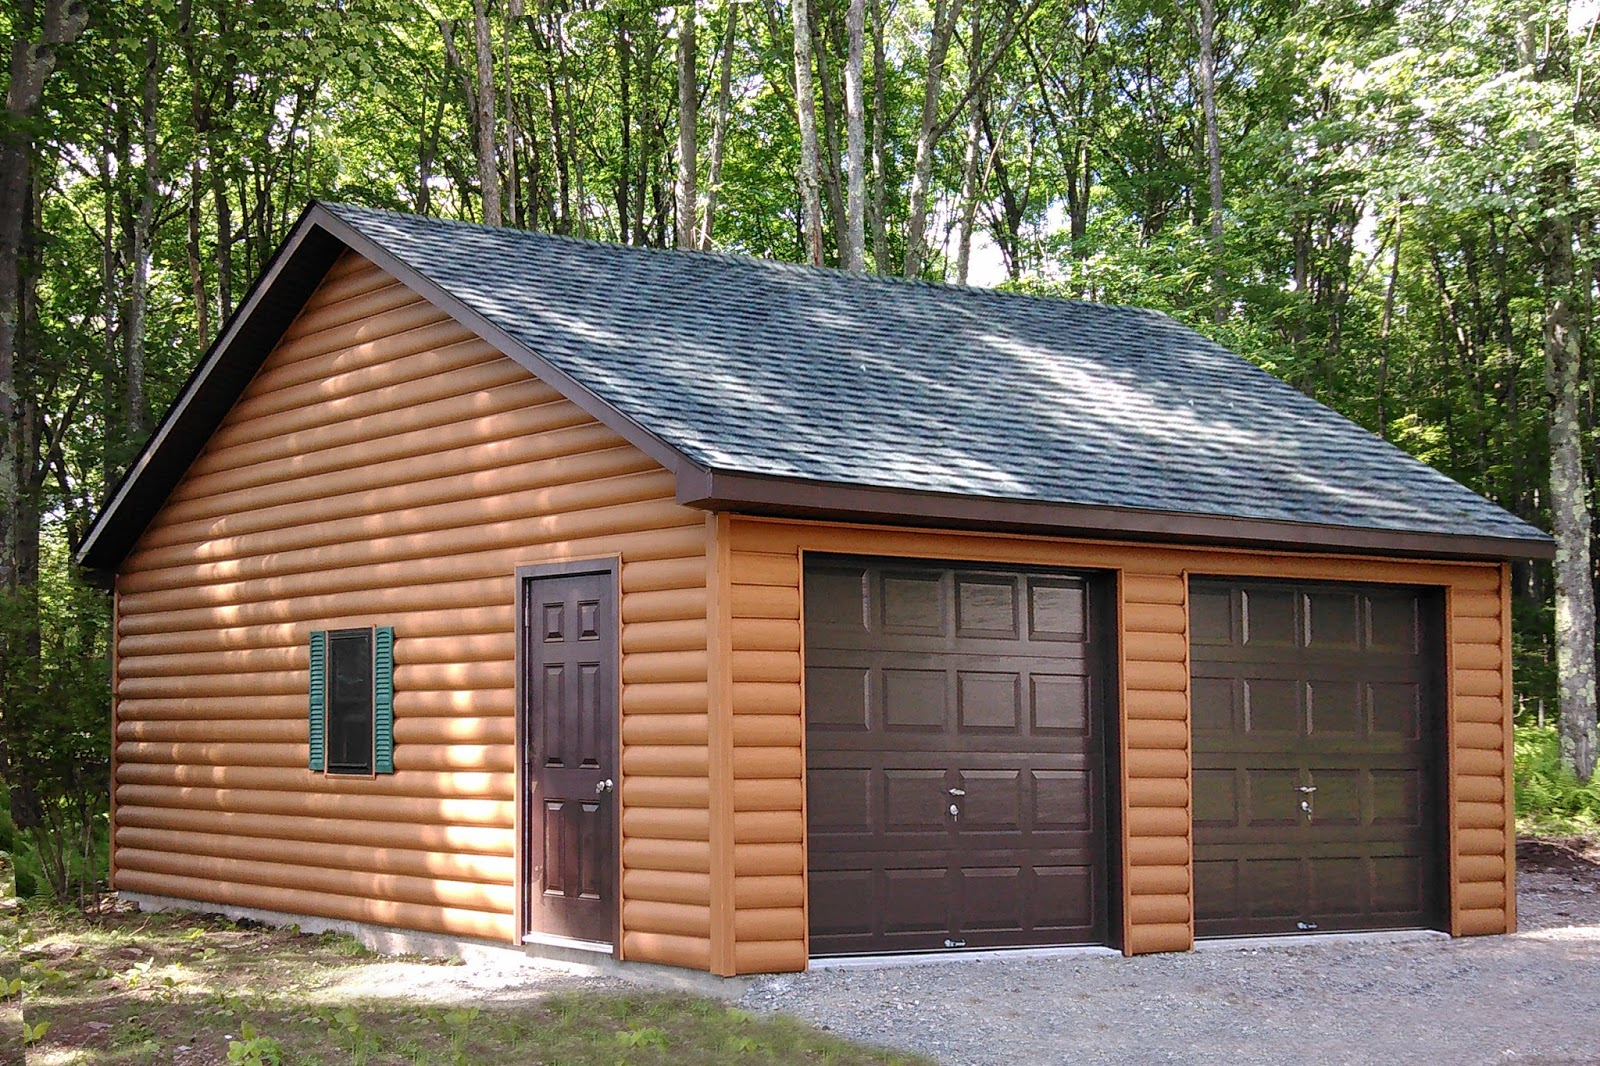 Prefab car garages for sale in pa nj ny ct de md va for Garage with apartment for sale